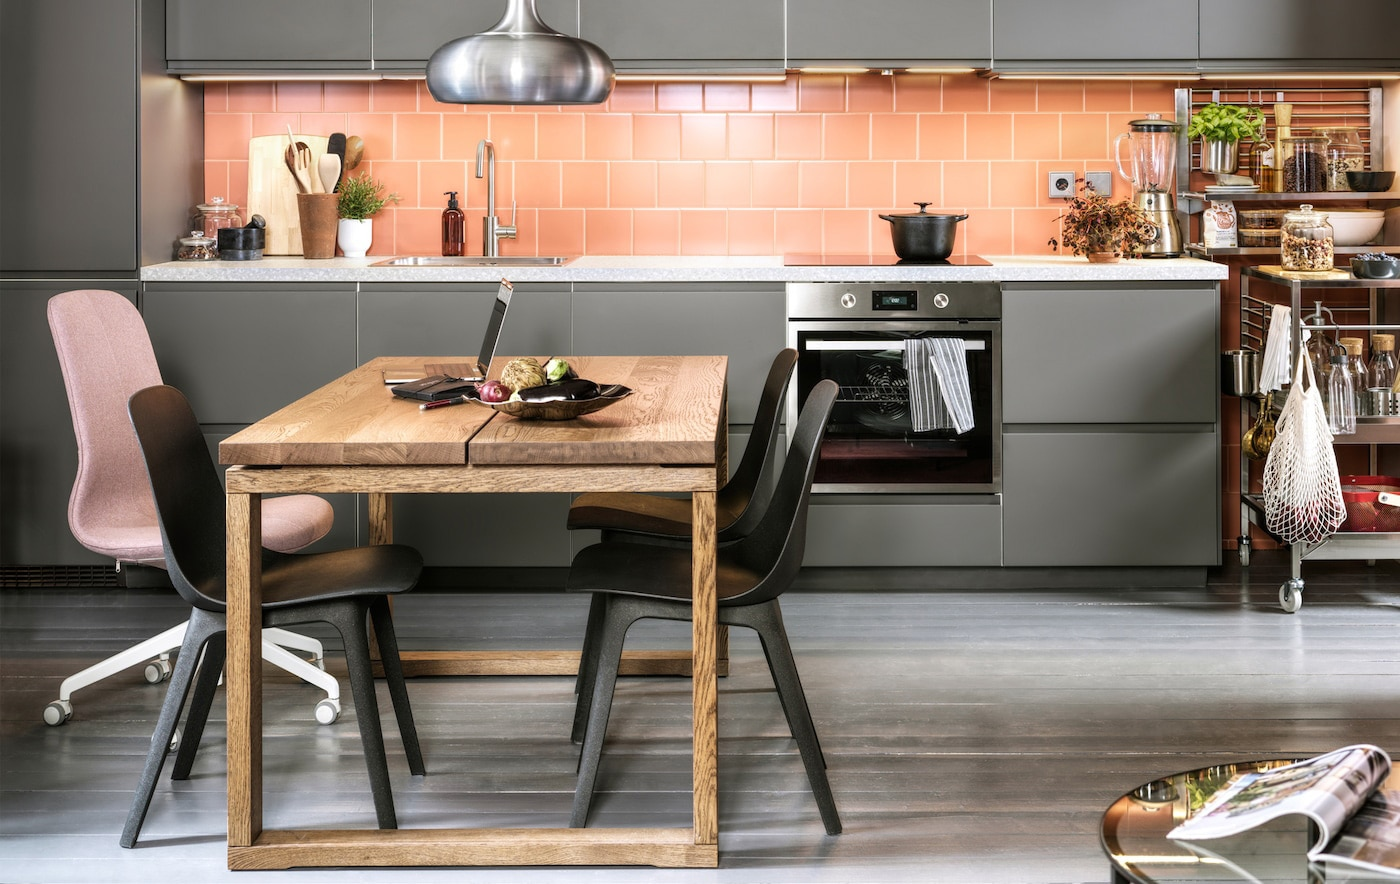 A pink-tiled kitchen with dark grey kitchen fronts, anthracite chairs, a dining table in oak veneer and a VÄXJÖ pendant lamp.